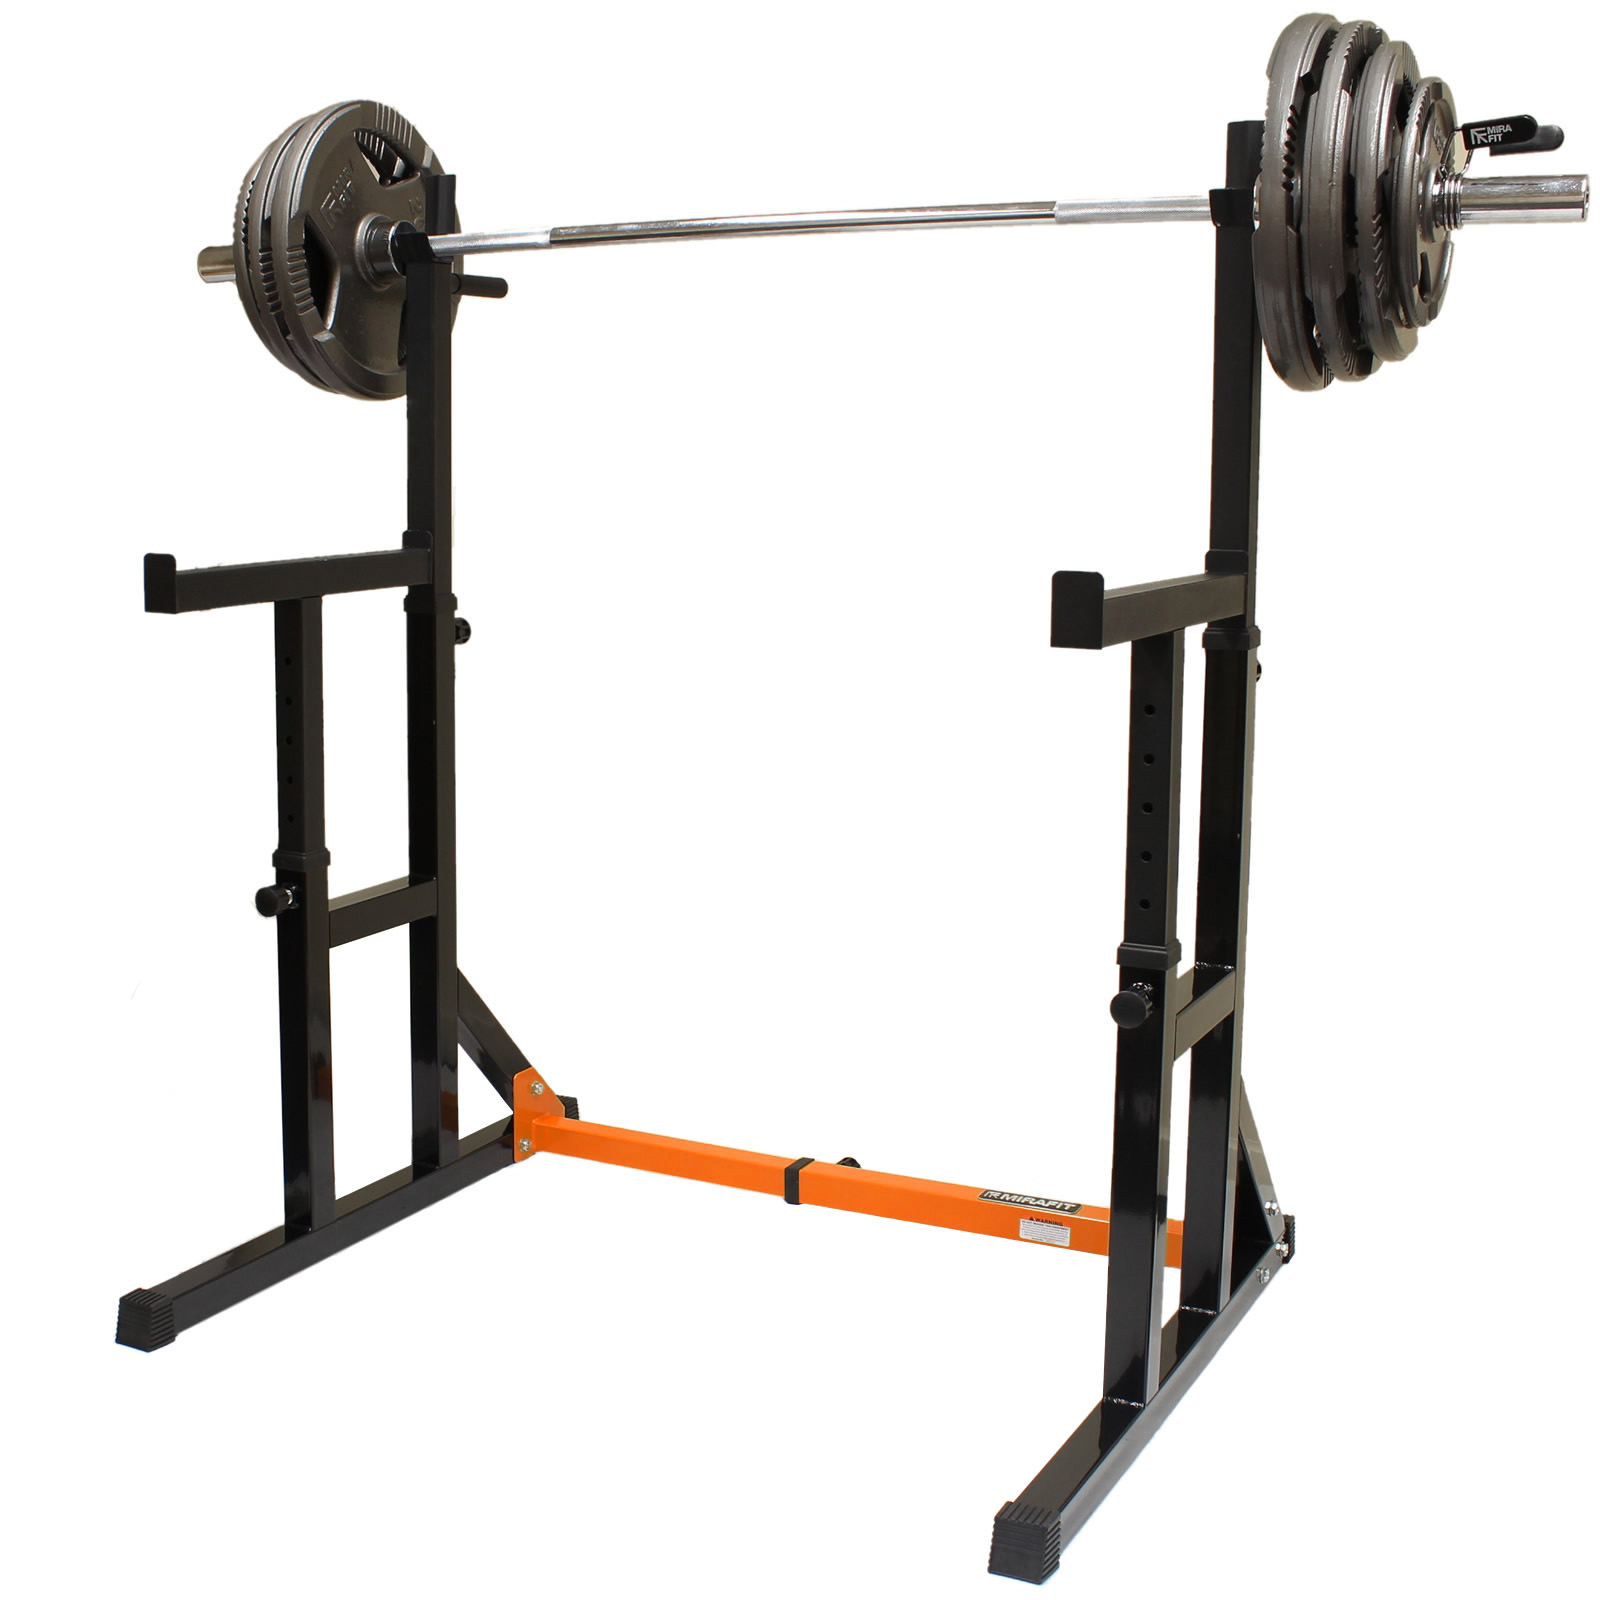 Mirafit Adjustable Squat Rack Dip Stand Barbell Weight Gym Bench Power Lifting Ebay